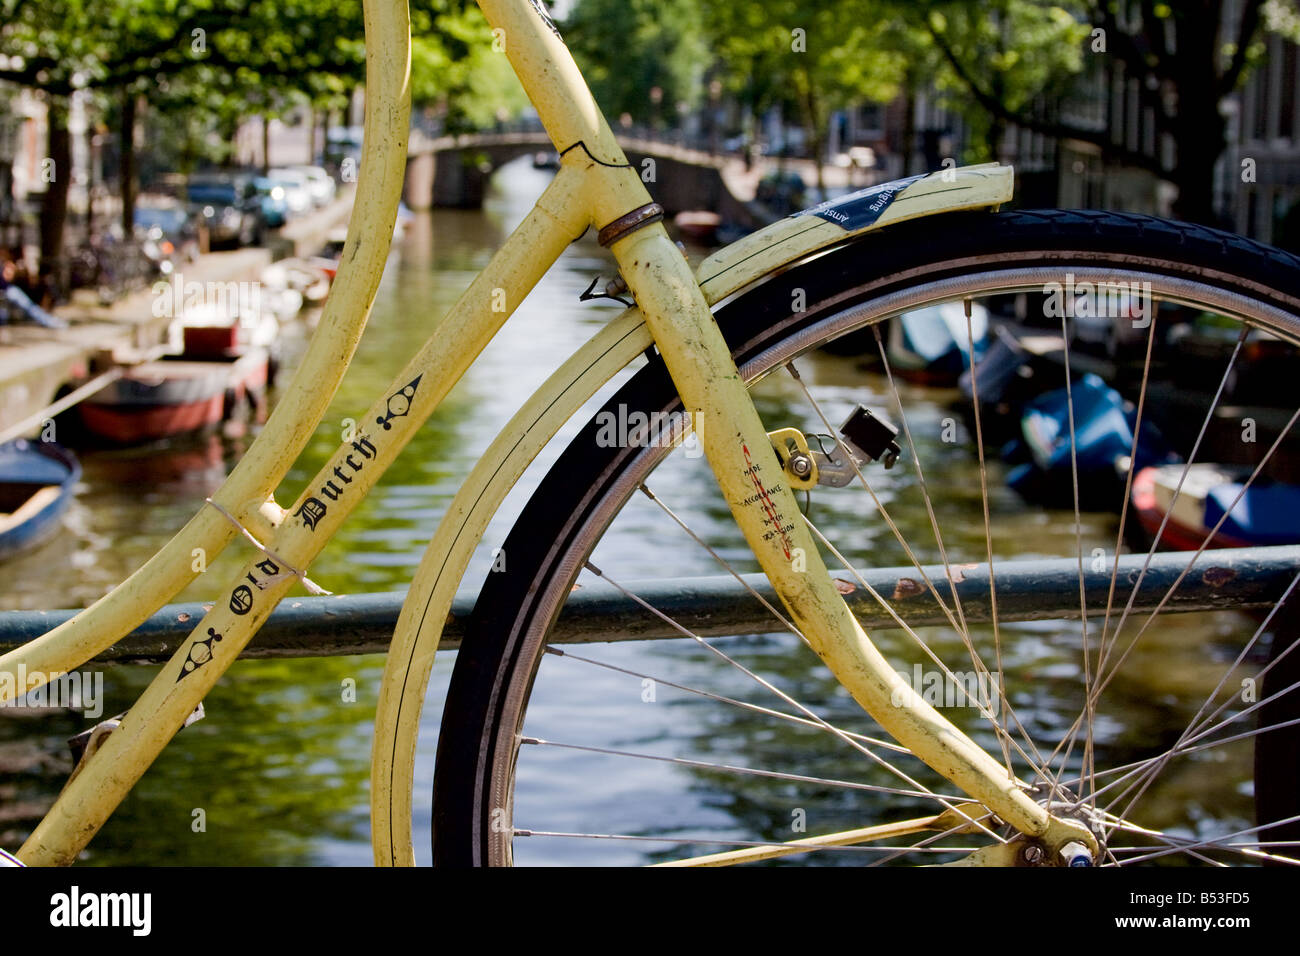 A bicycle framing a view of a canal in Amsterdam - Stock Image